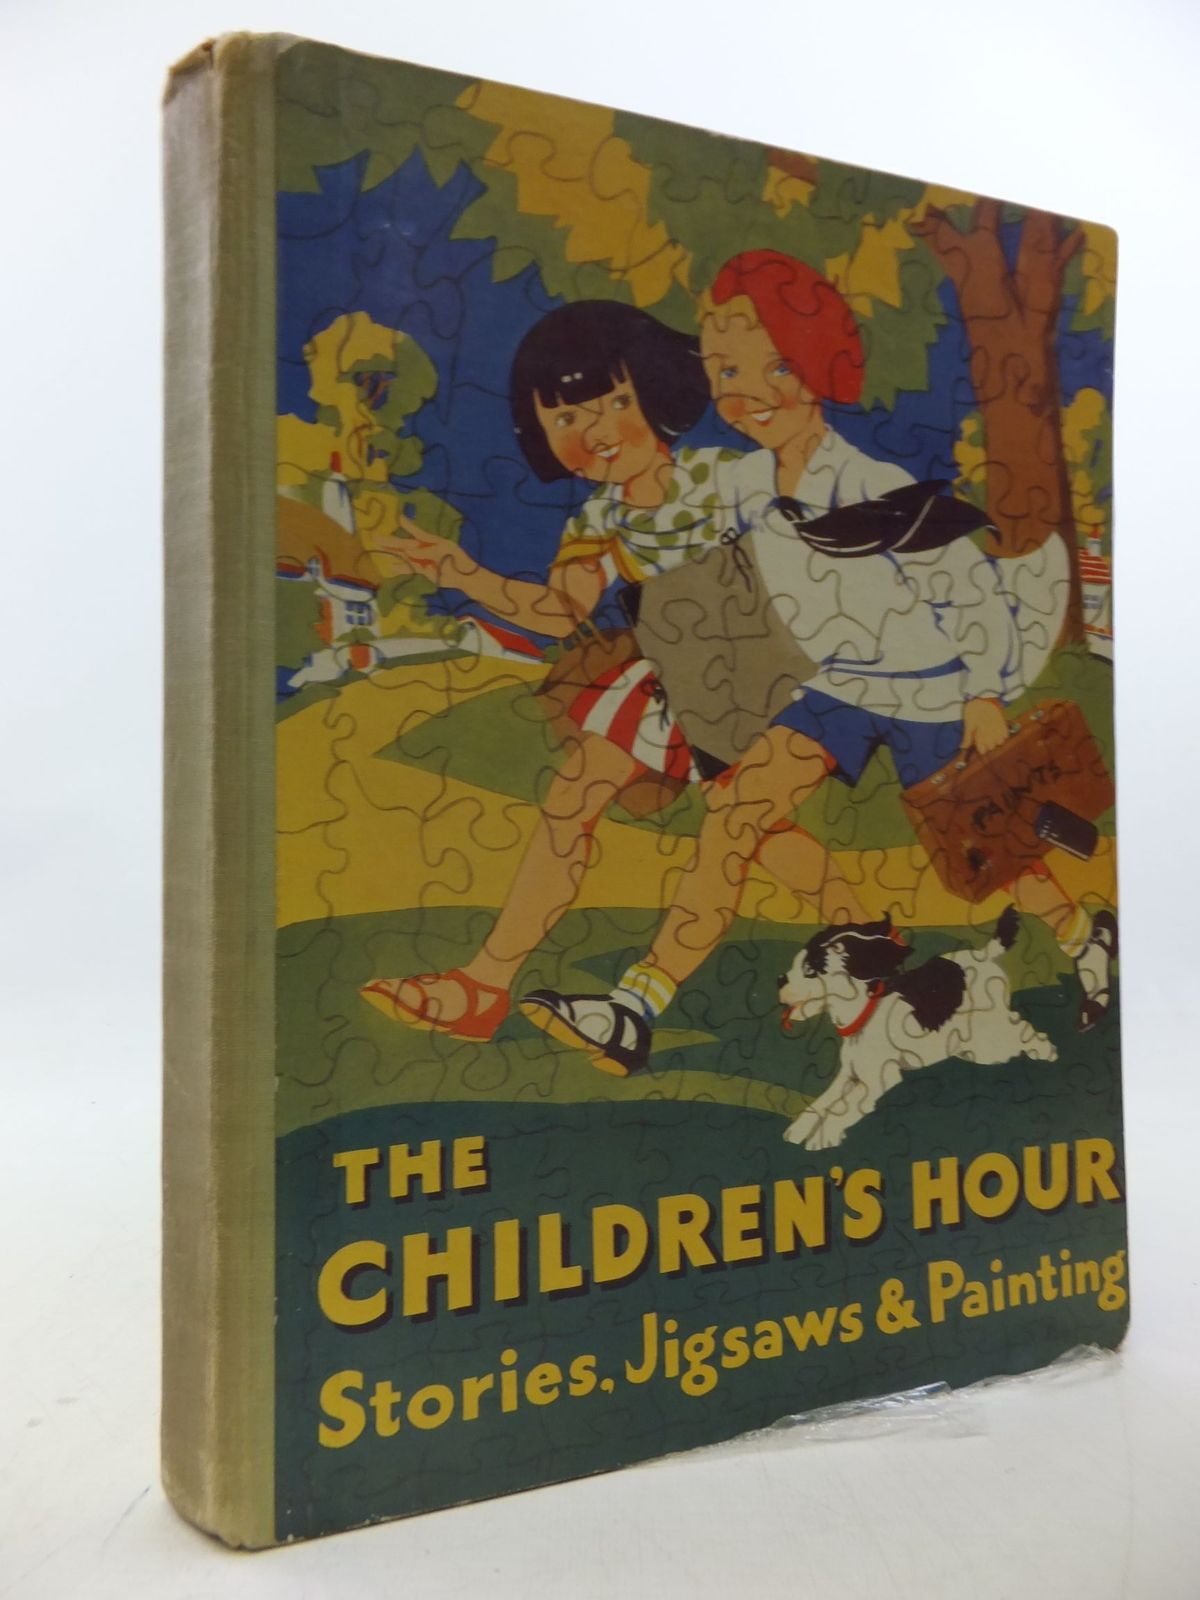 Photo of THE CHILDREN'S HOUR STORIES, JIGSAWS AND PAINTING